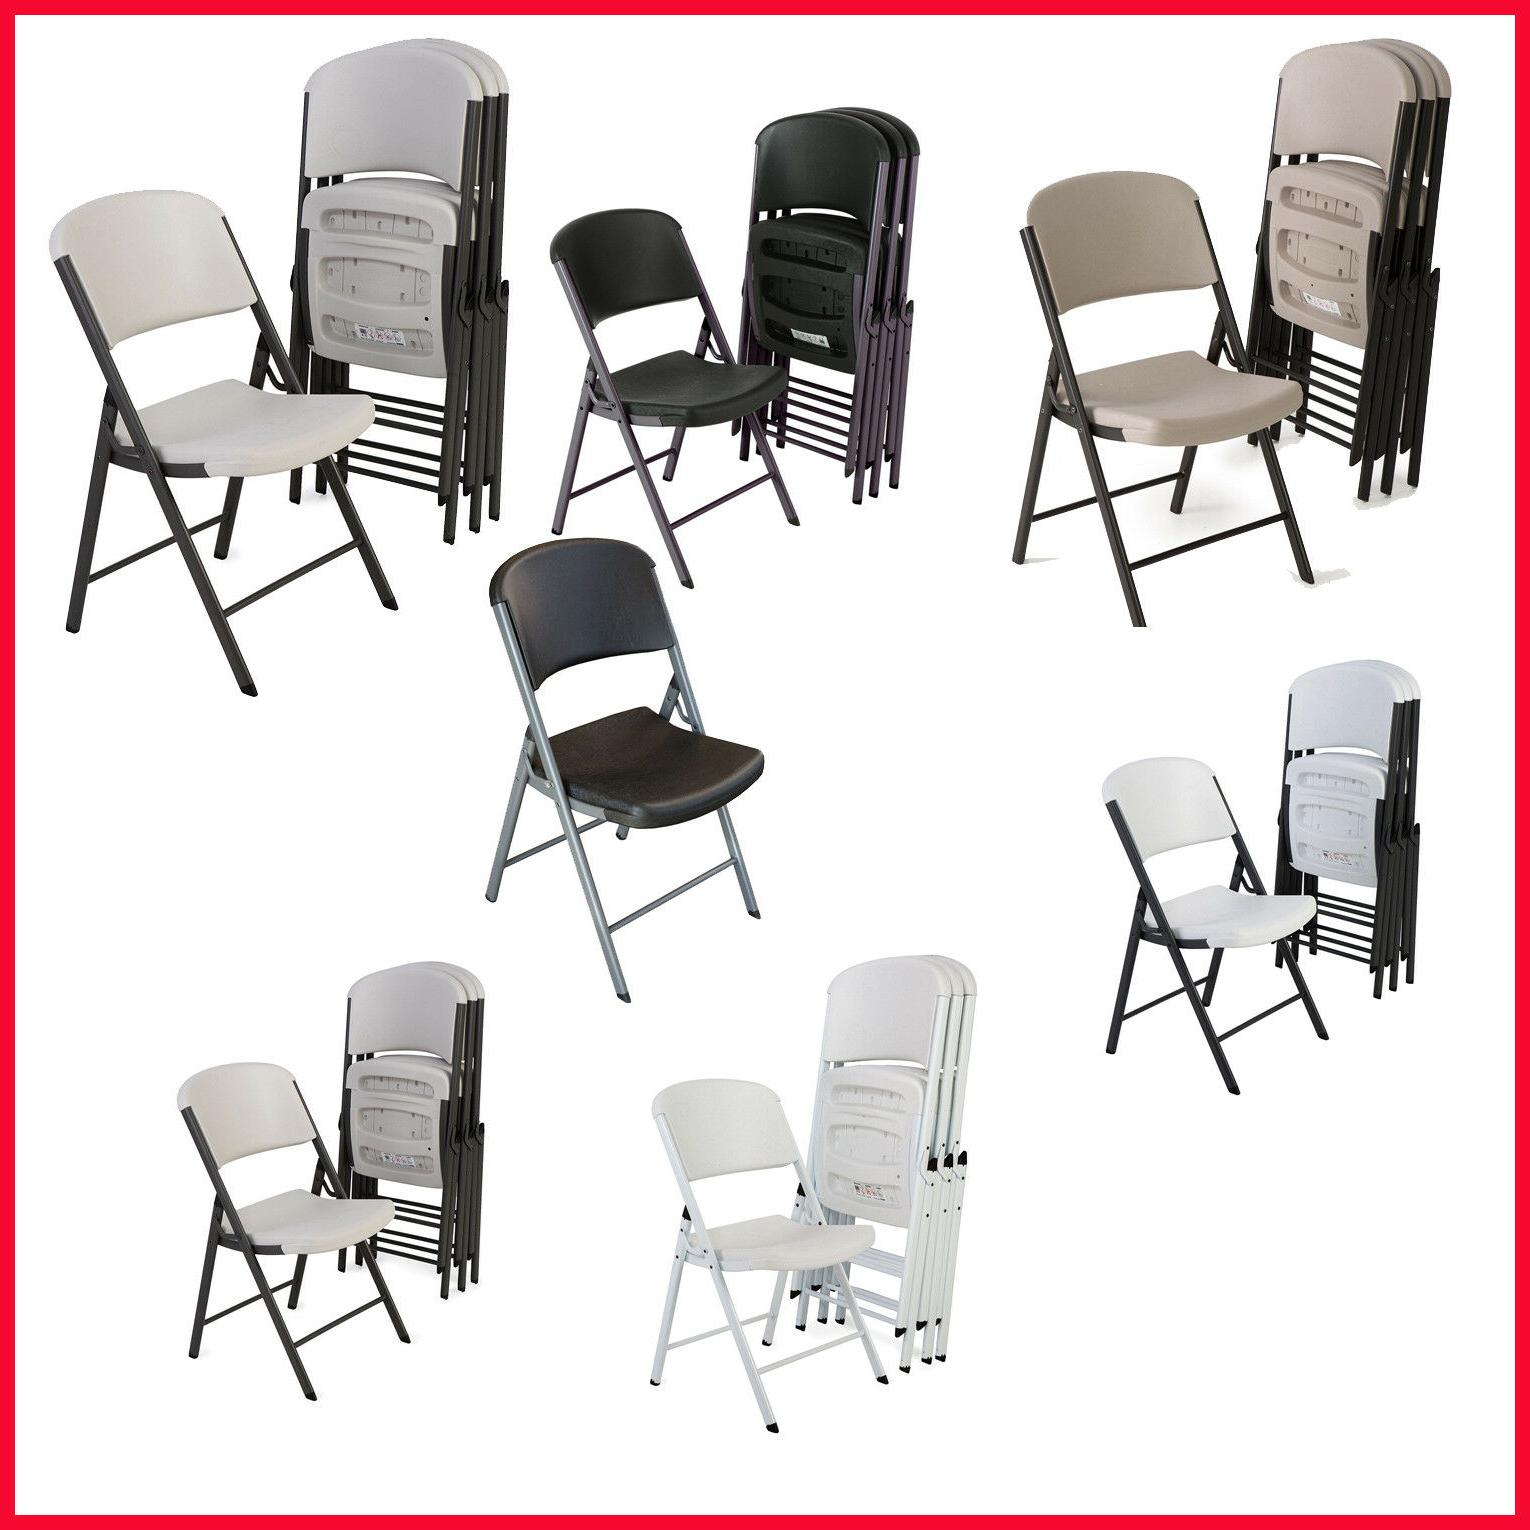 commercial grade contoured folding chair 4 pack